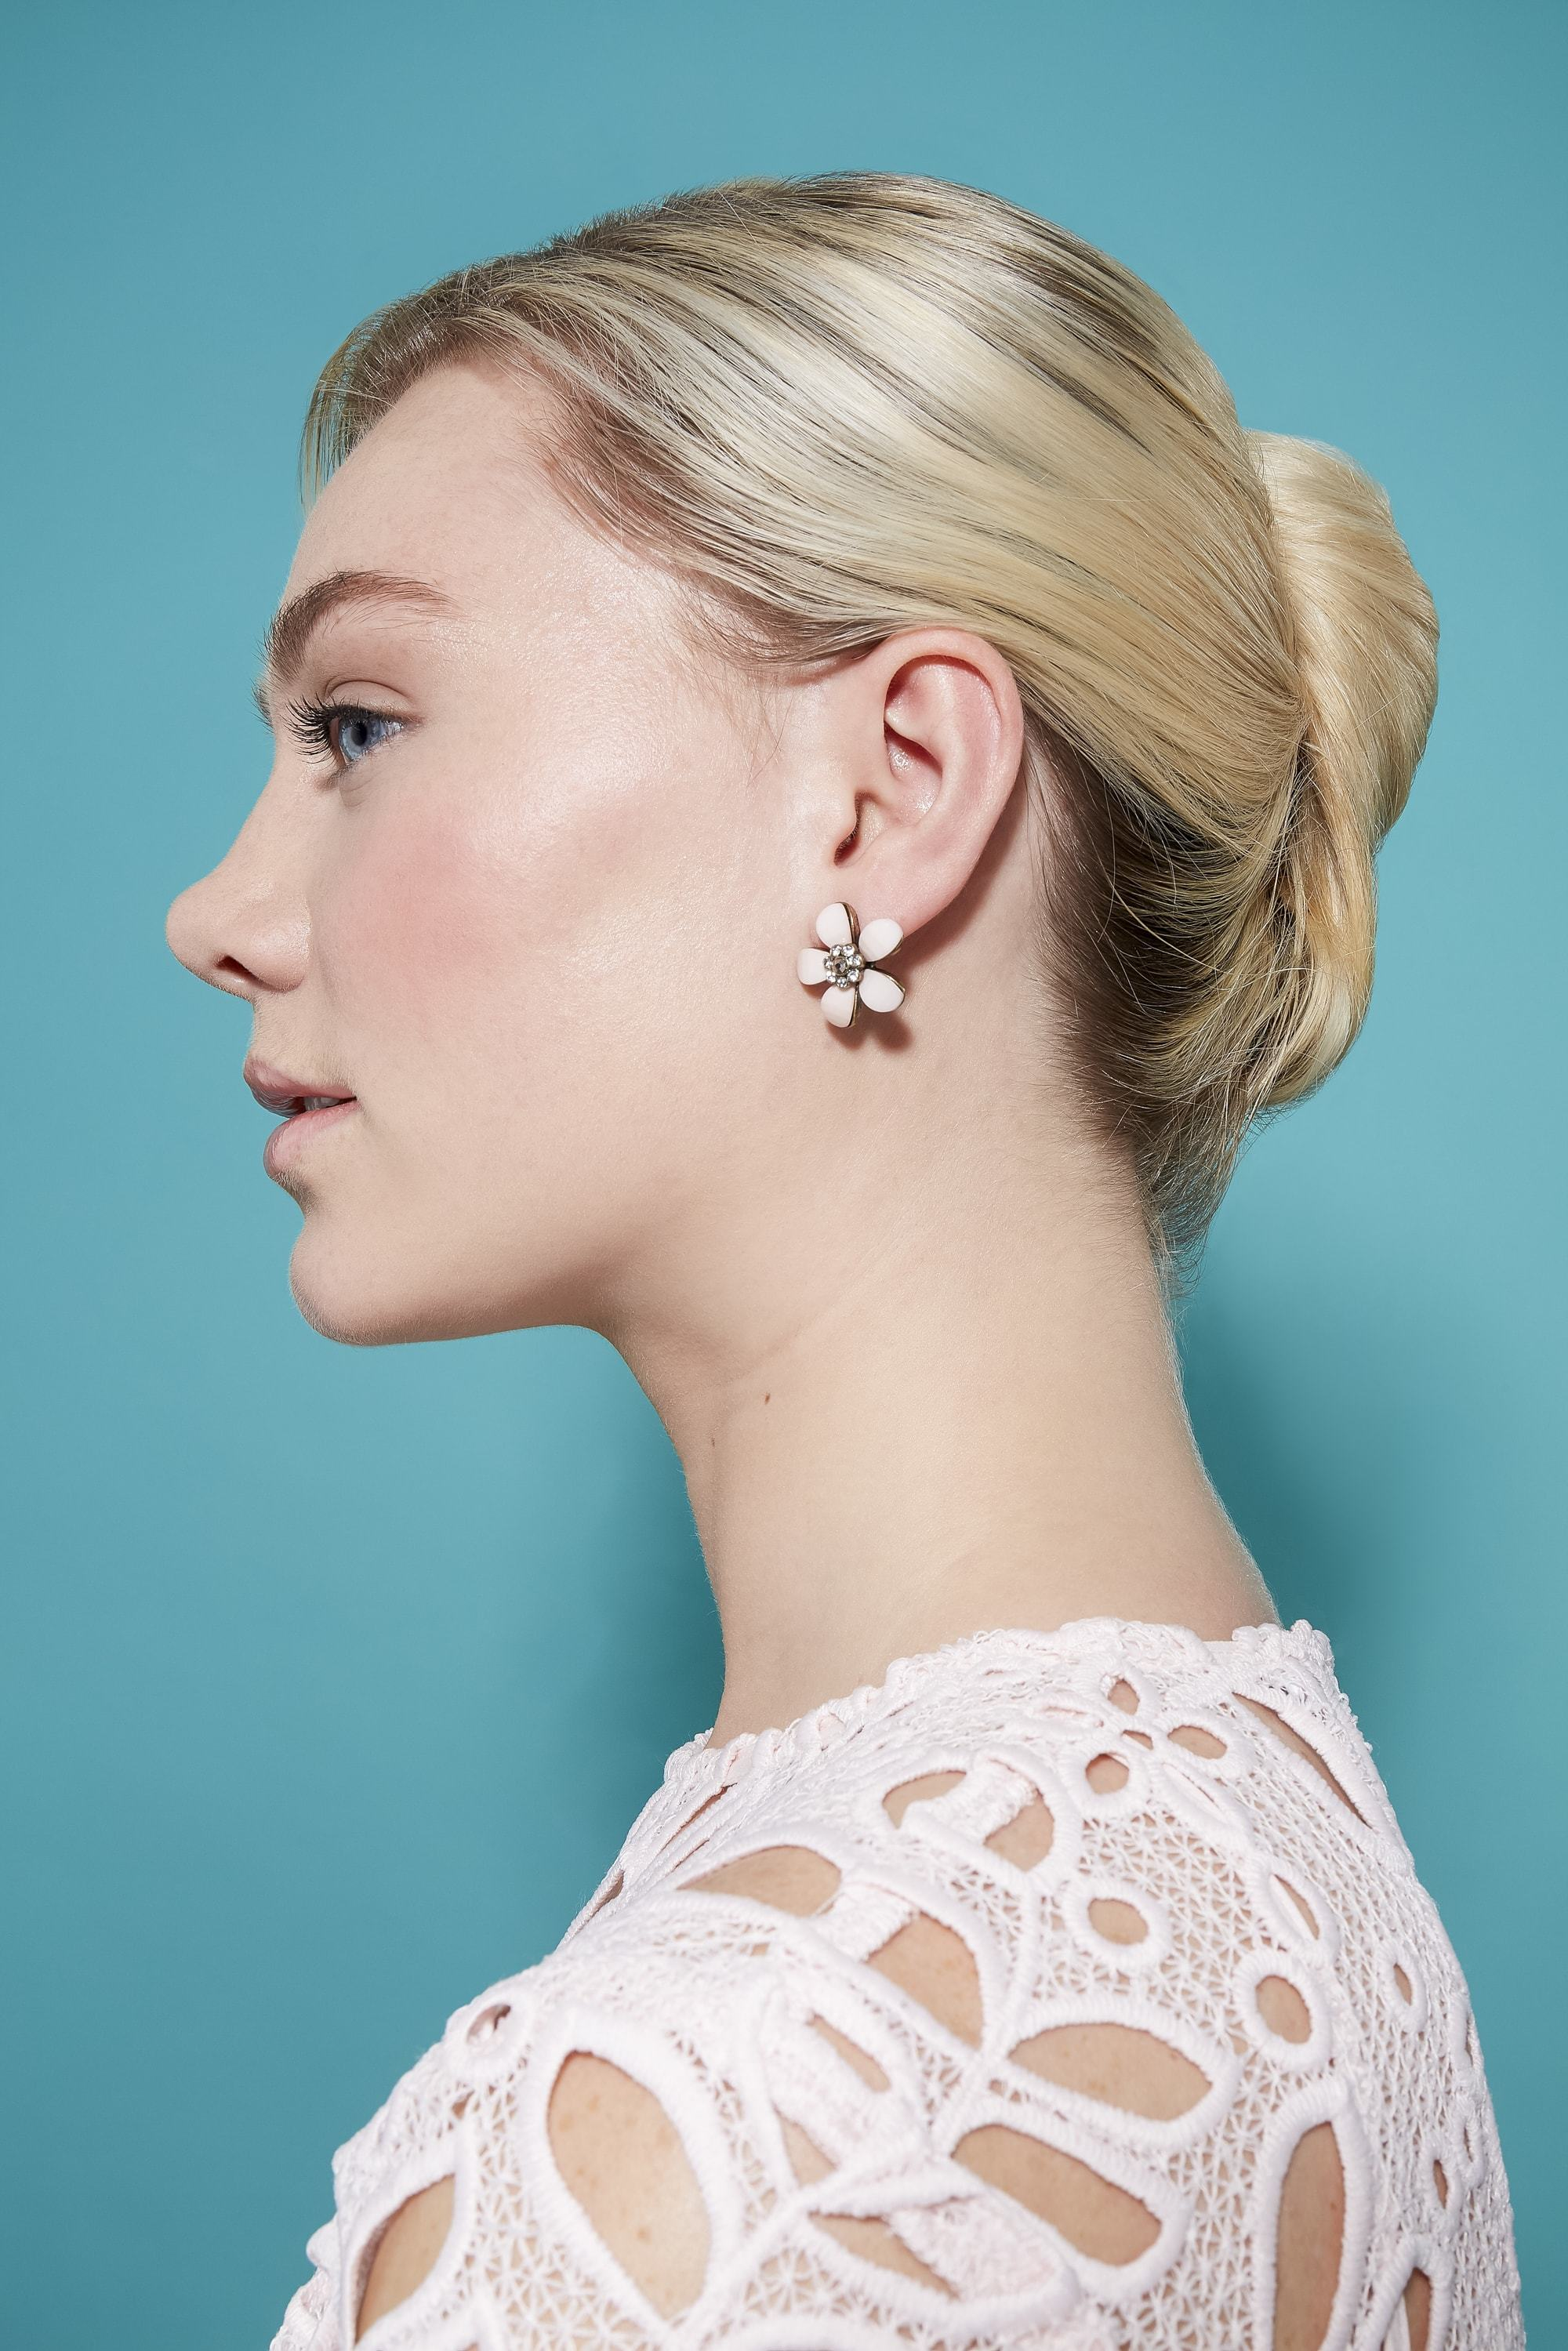 side view of model with blonde hair styled into a french twist updo wearing a white top